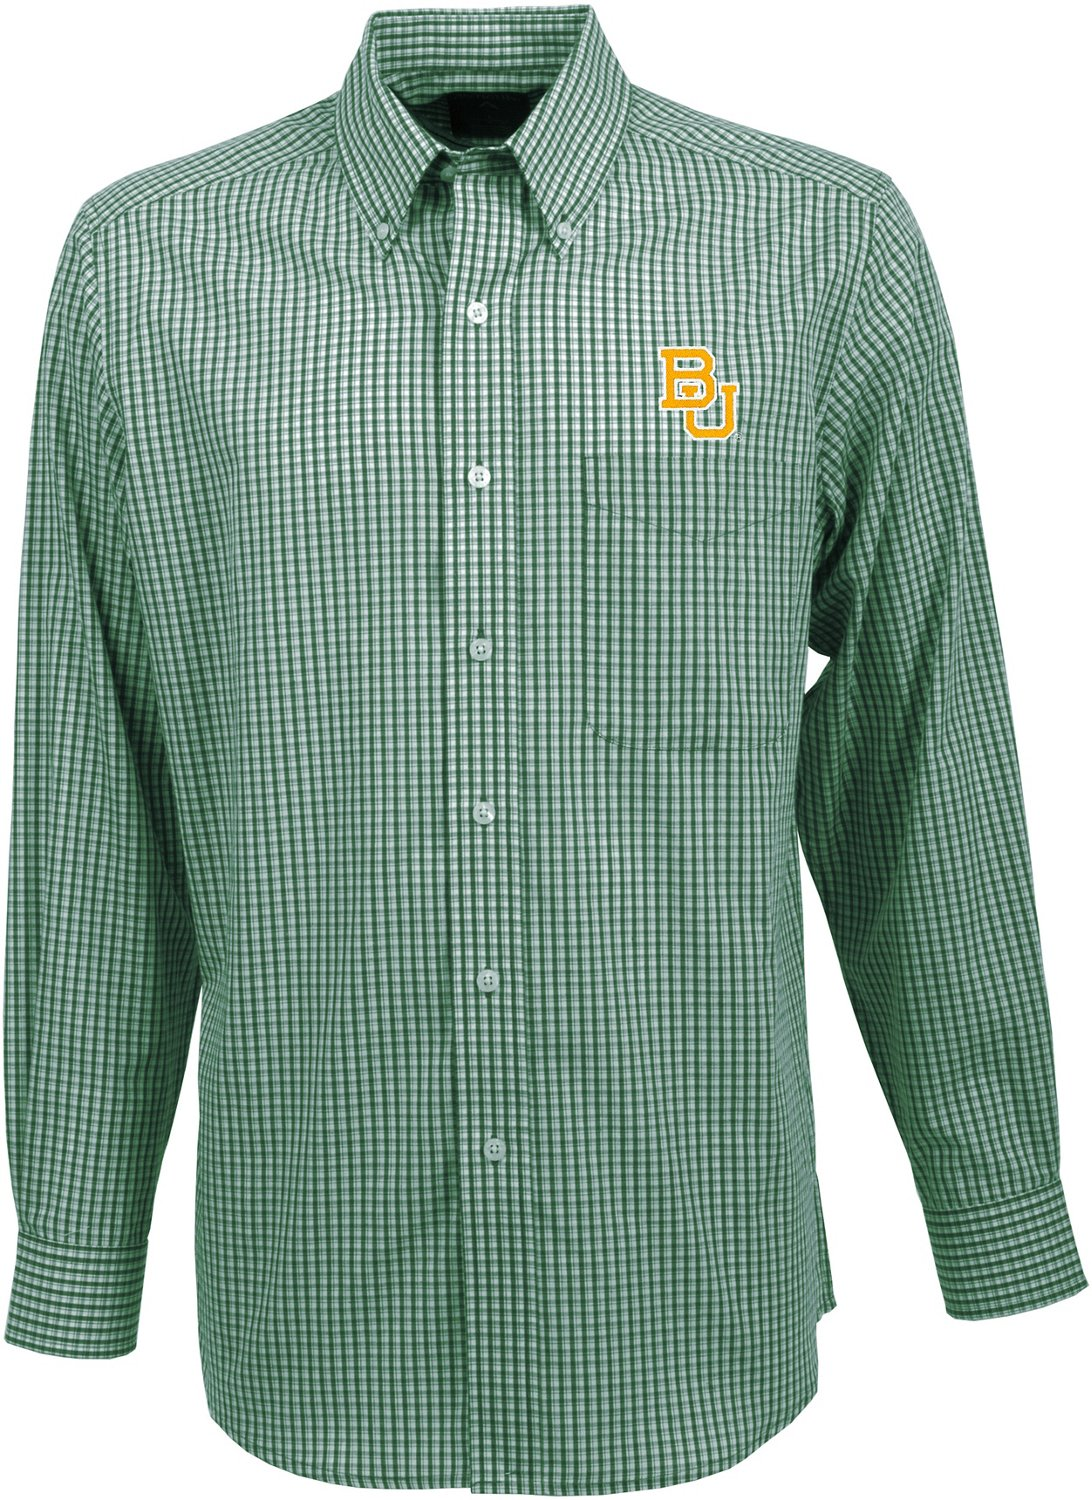 Antigua Men's Baylor University Associate Long Sleeve Dress Shirt